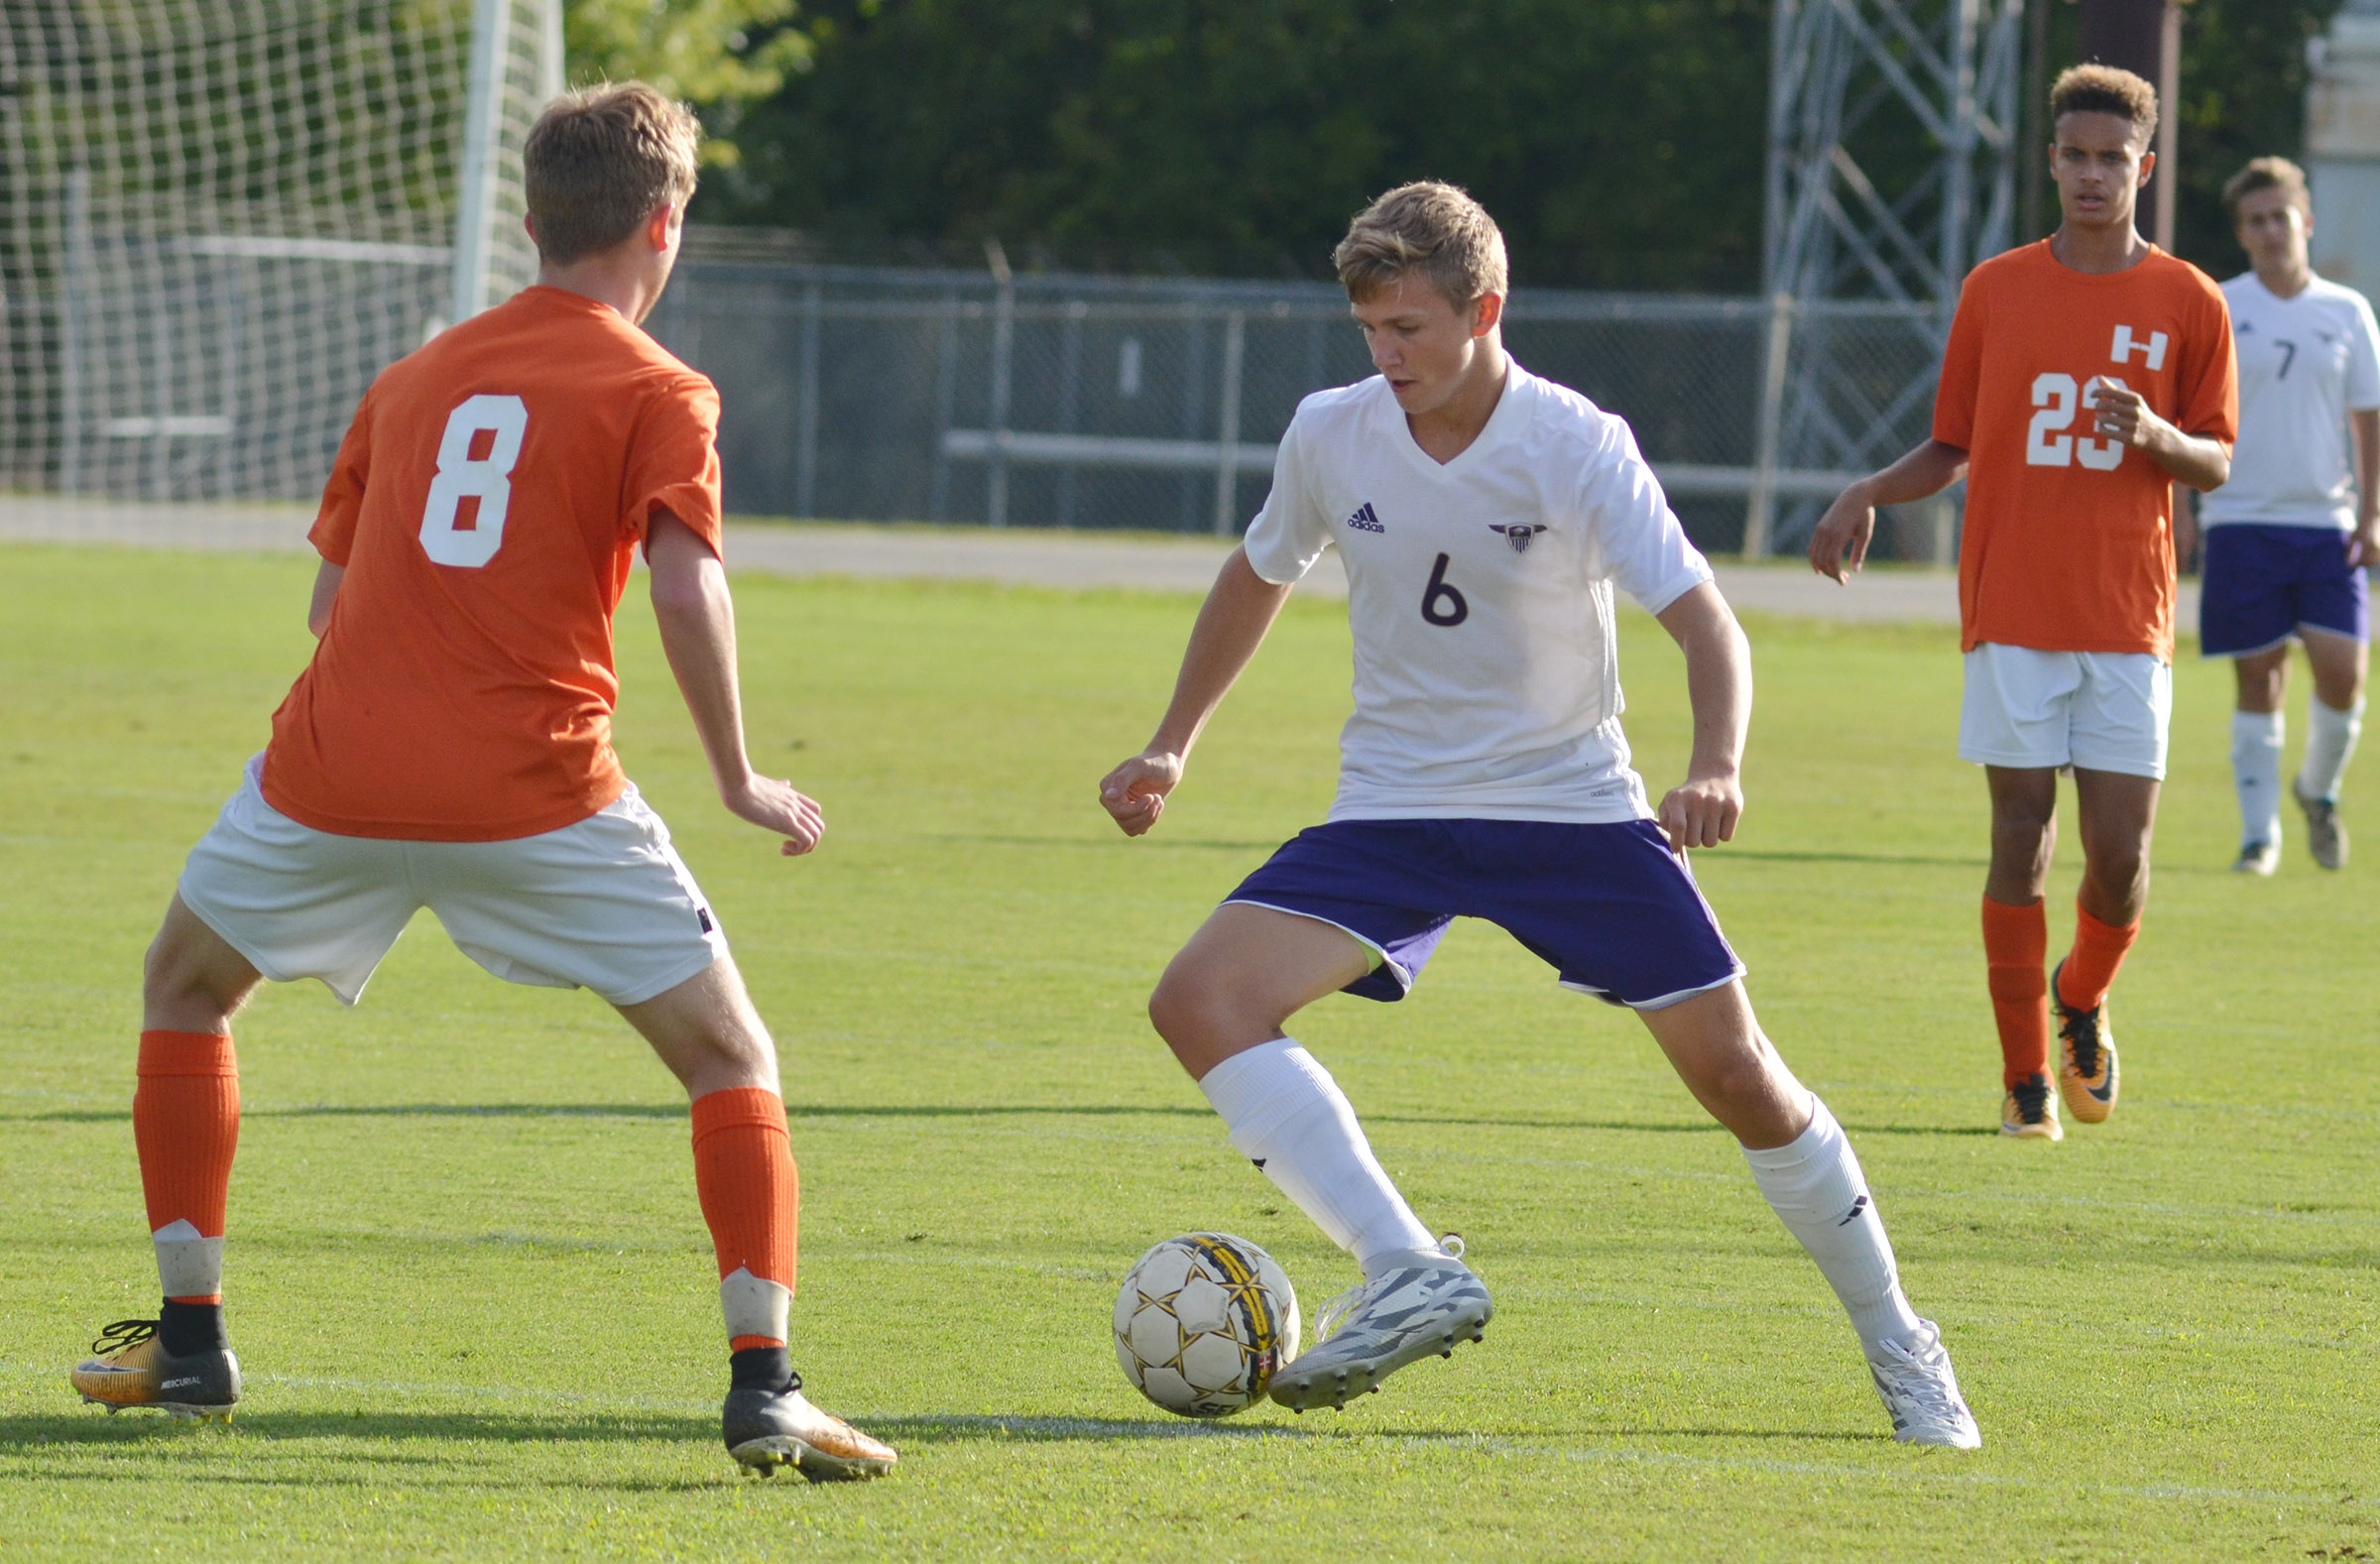 CHS freshman Blase Wheatley controls the ball.